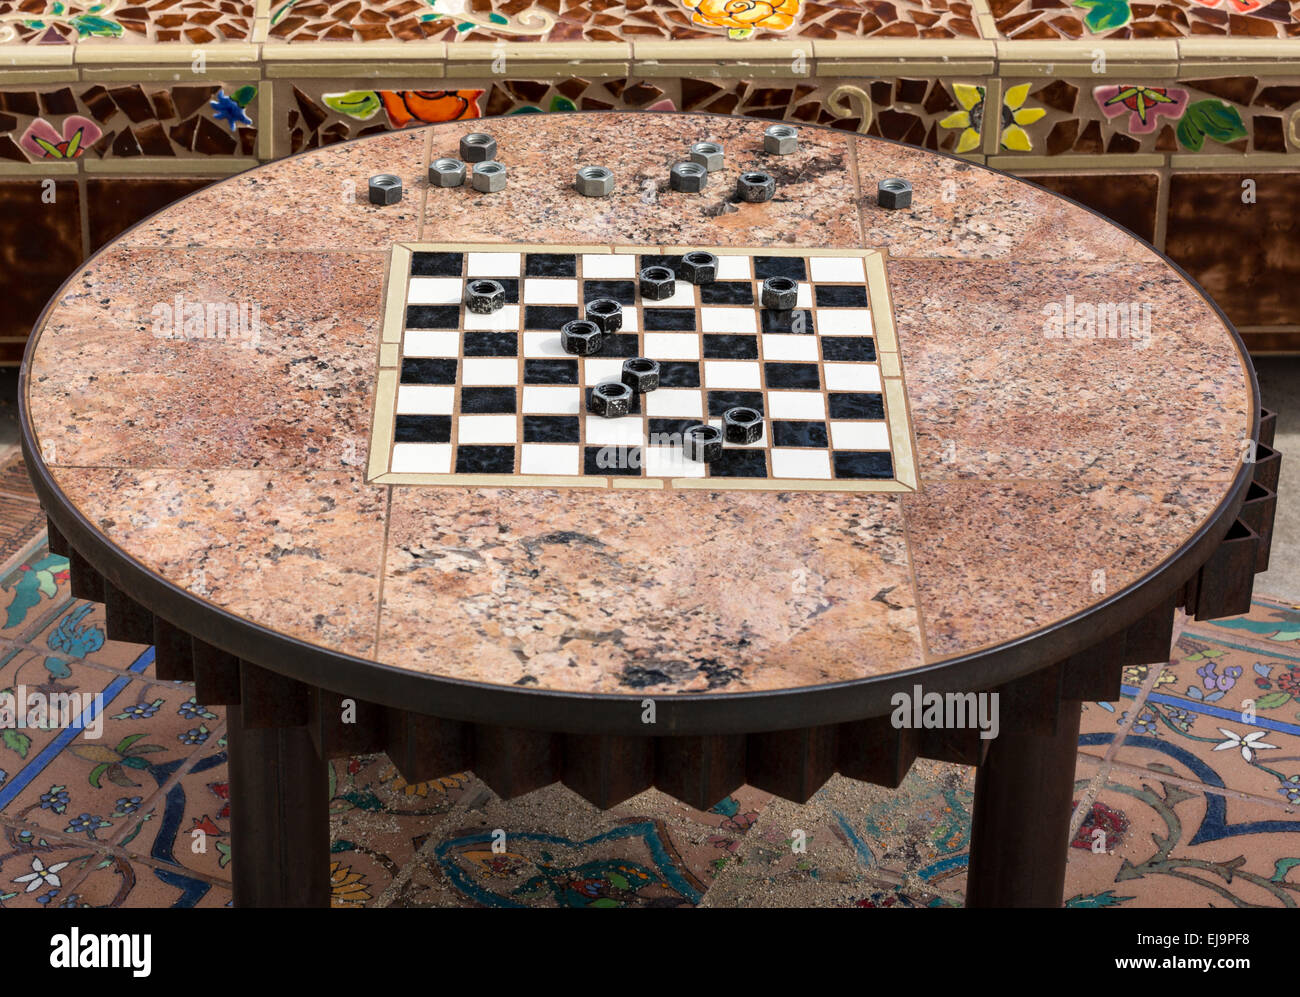 Checkers or Draughts game with metal nuts - Stock Image